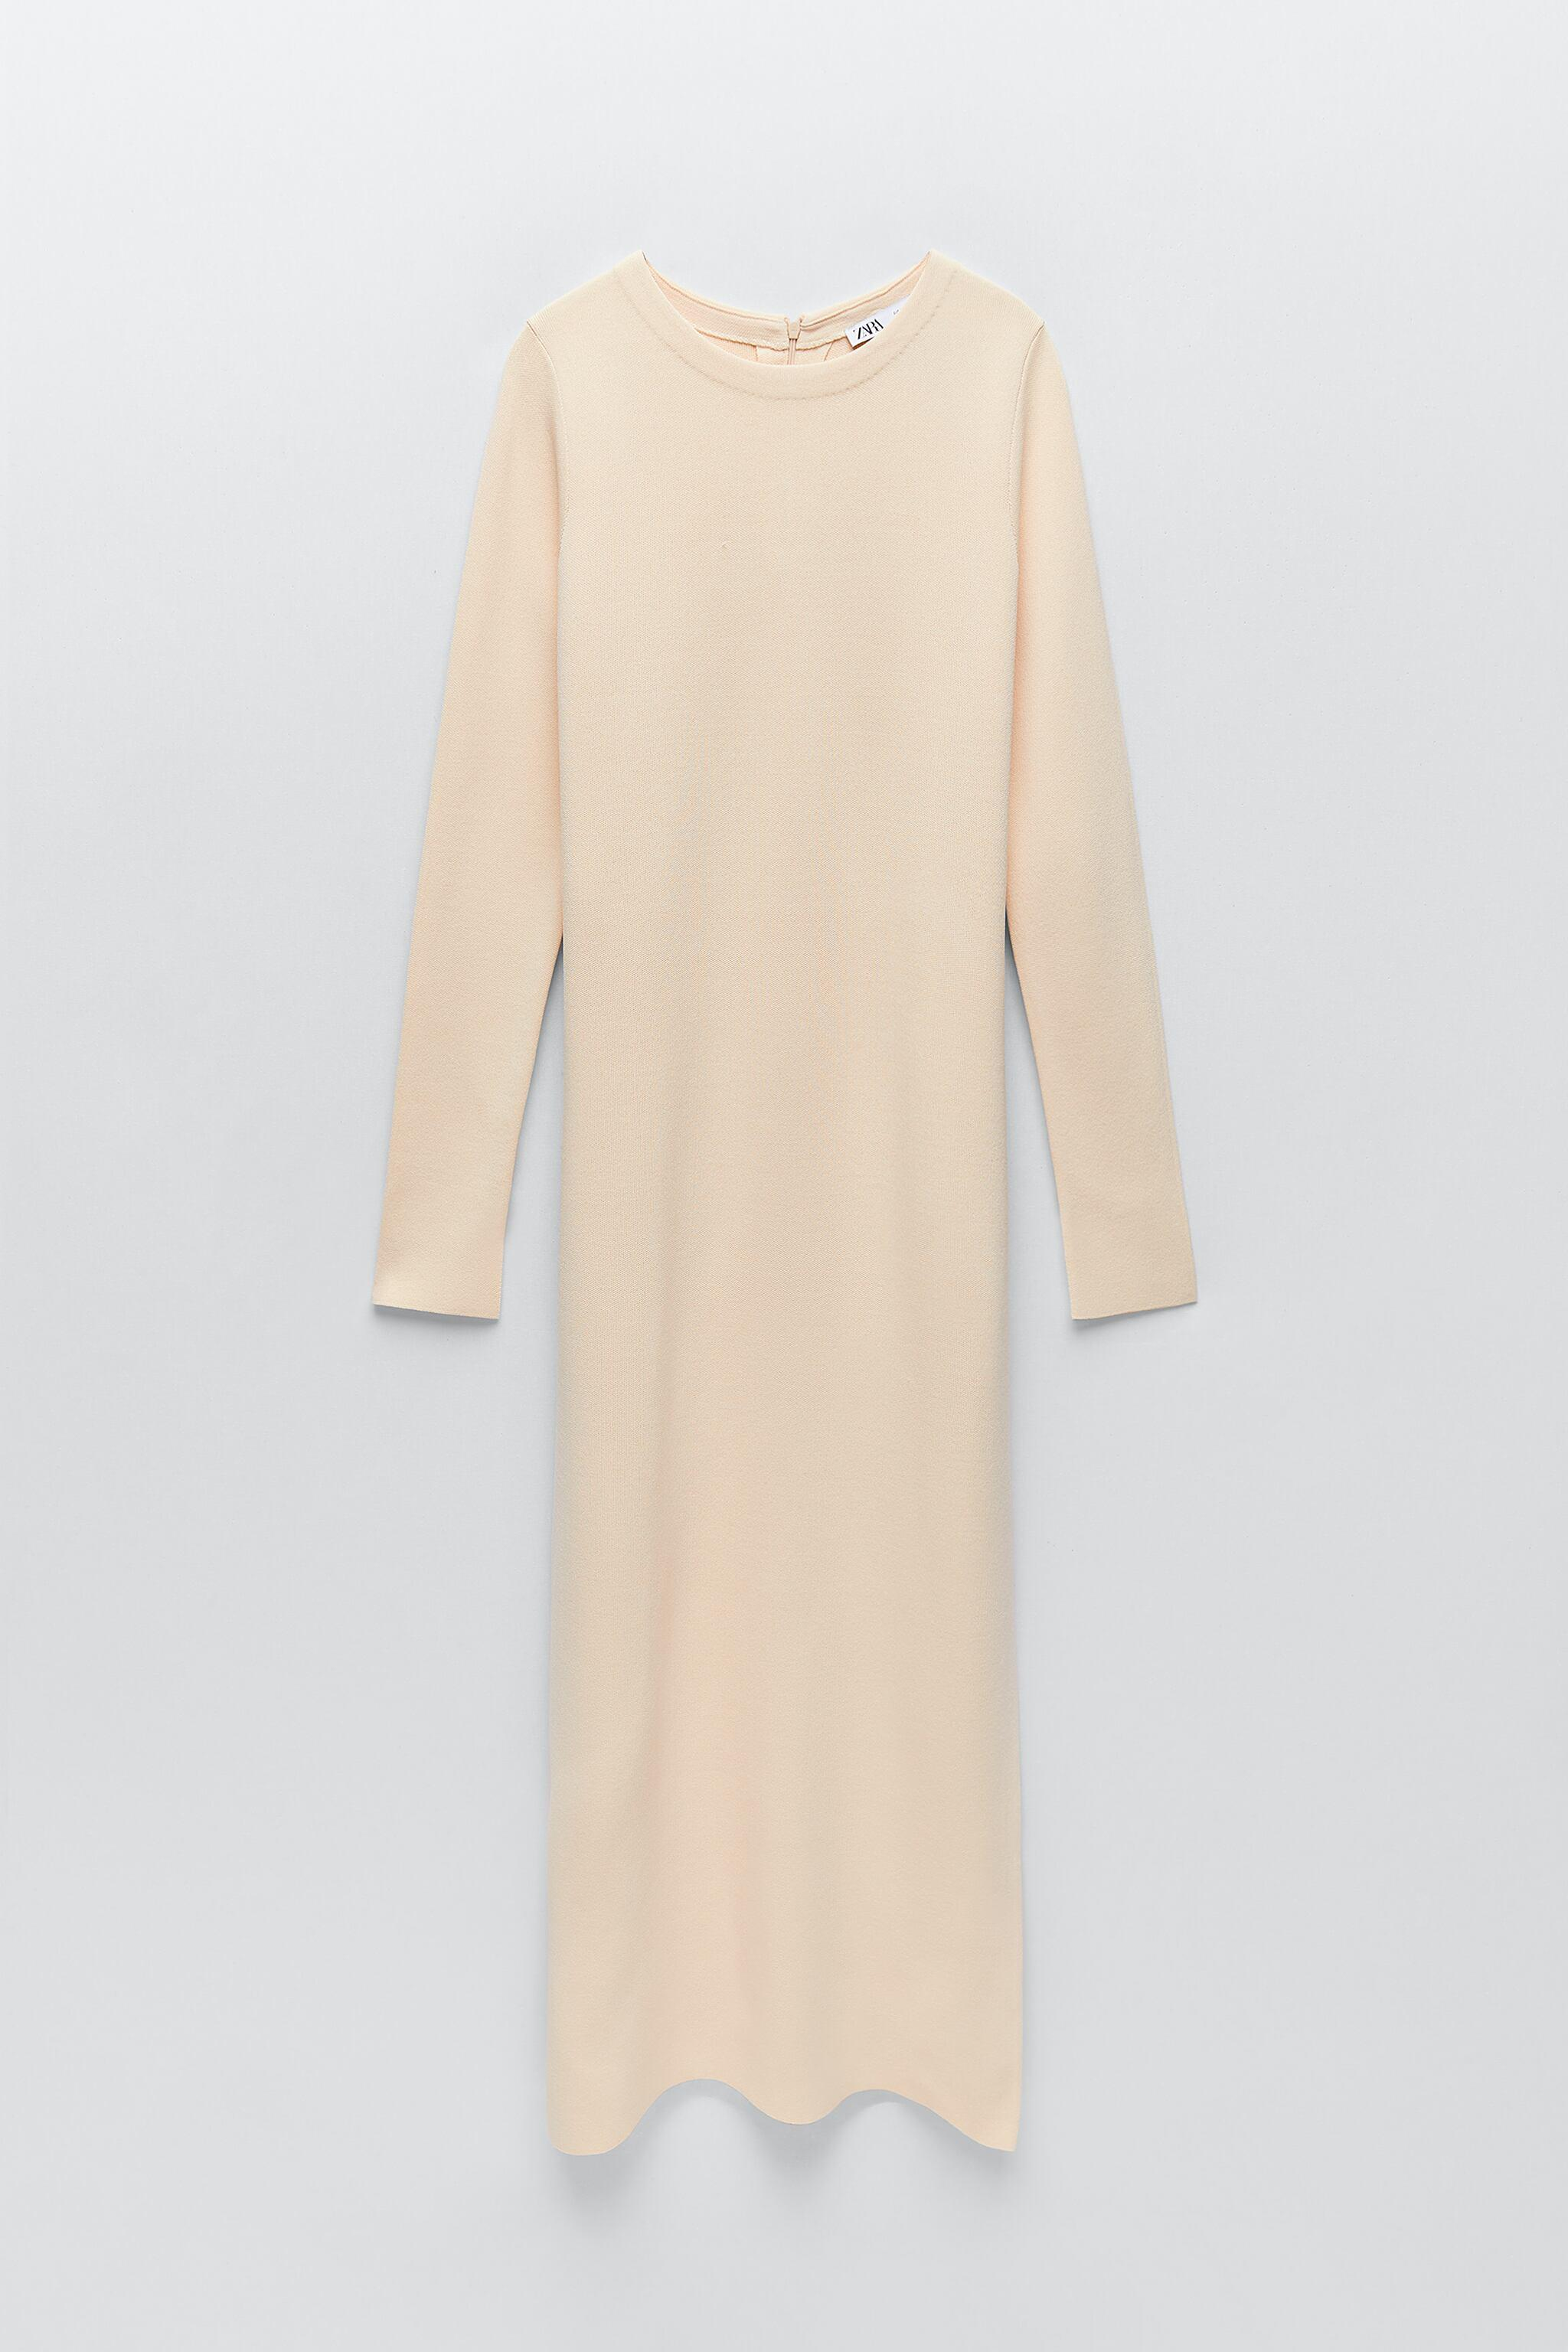 LONG KNIT DRESS LIMITED EDITION 4